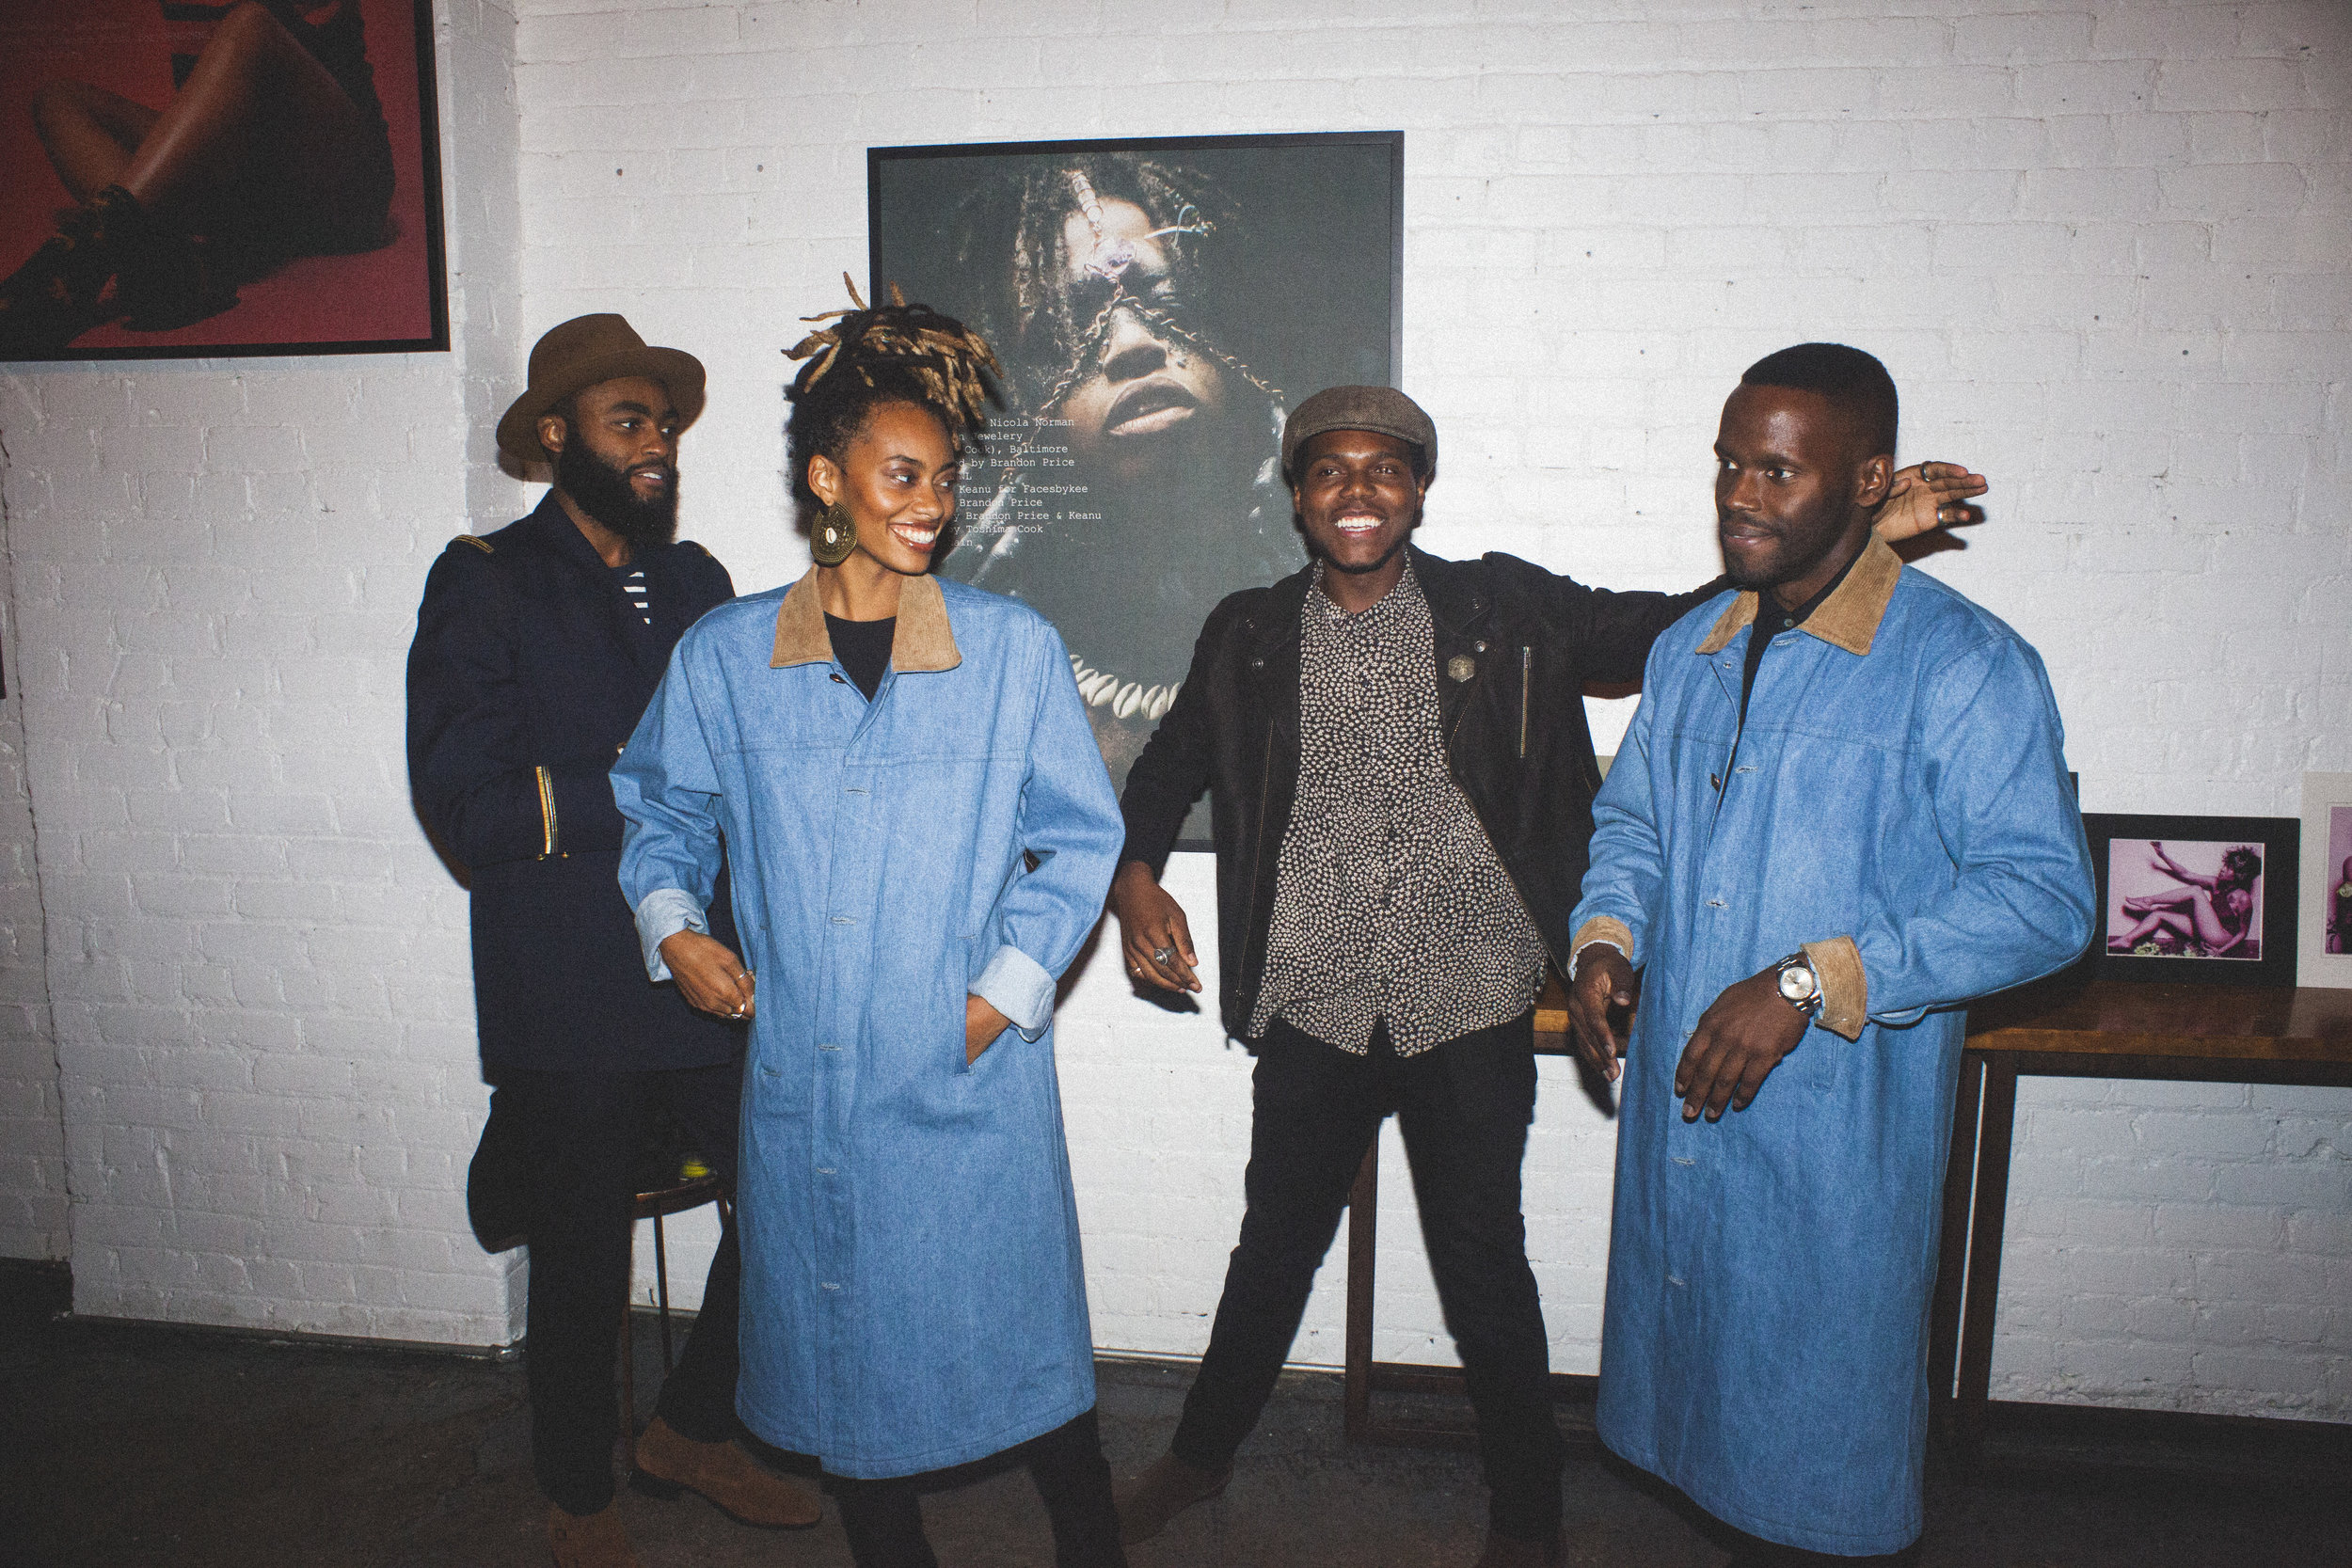 Designer team Rony Byas and Harvey Leon with the Renaissance Coat / Freddie Rankin II